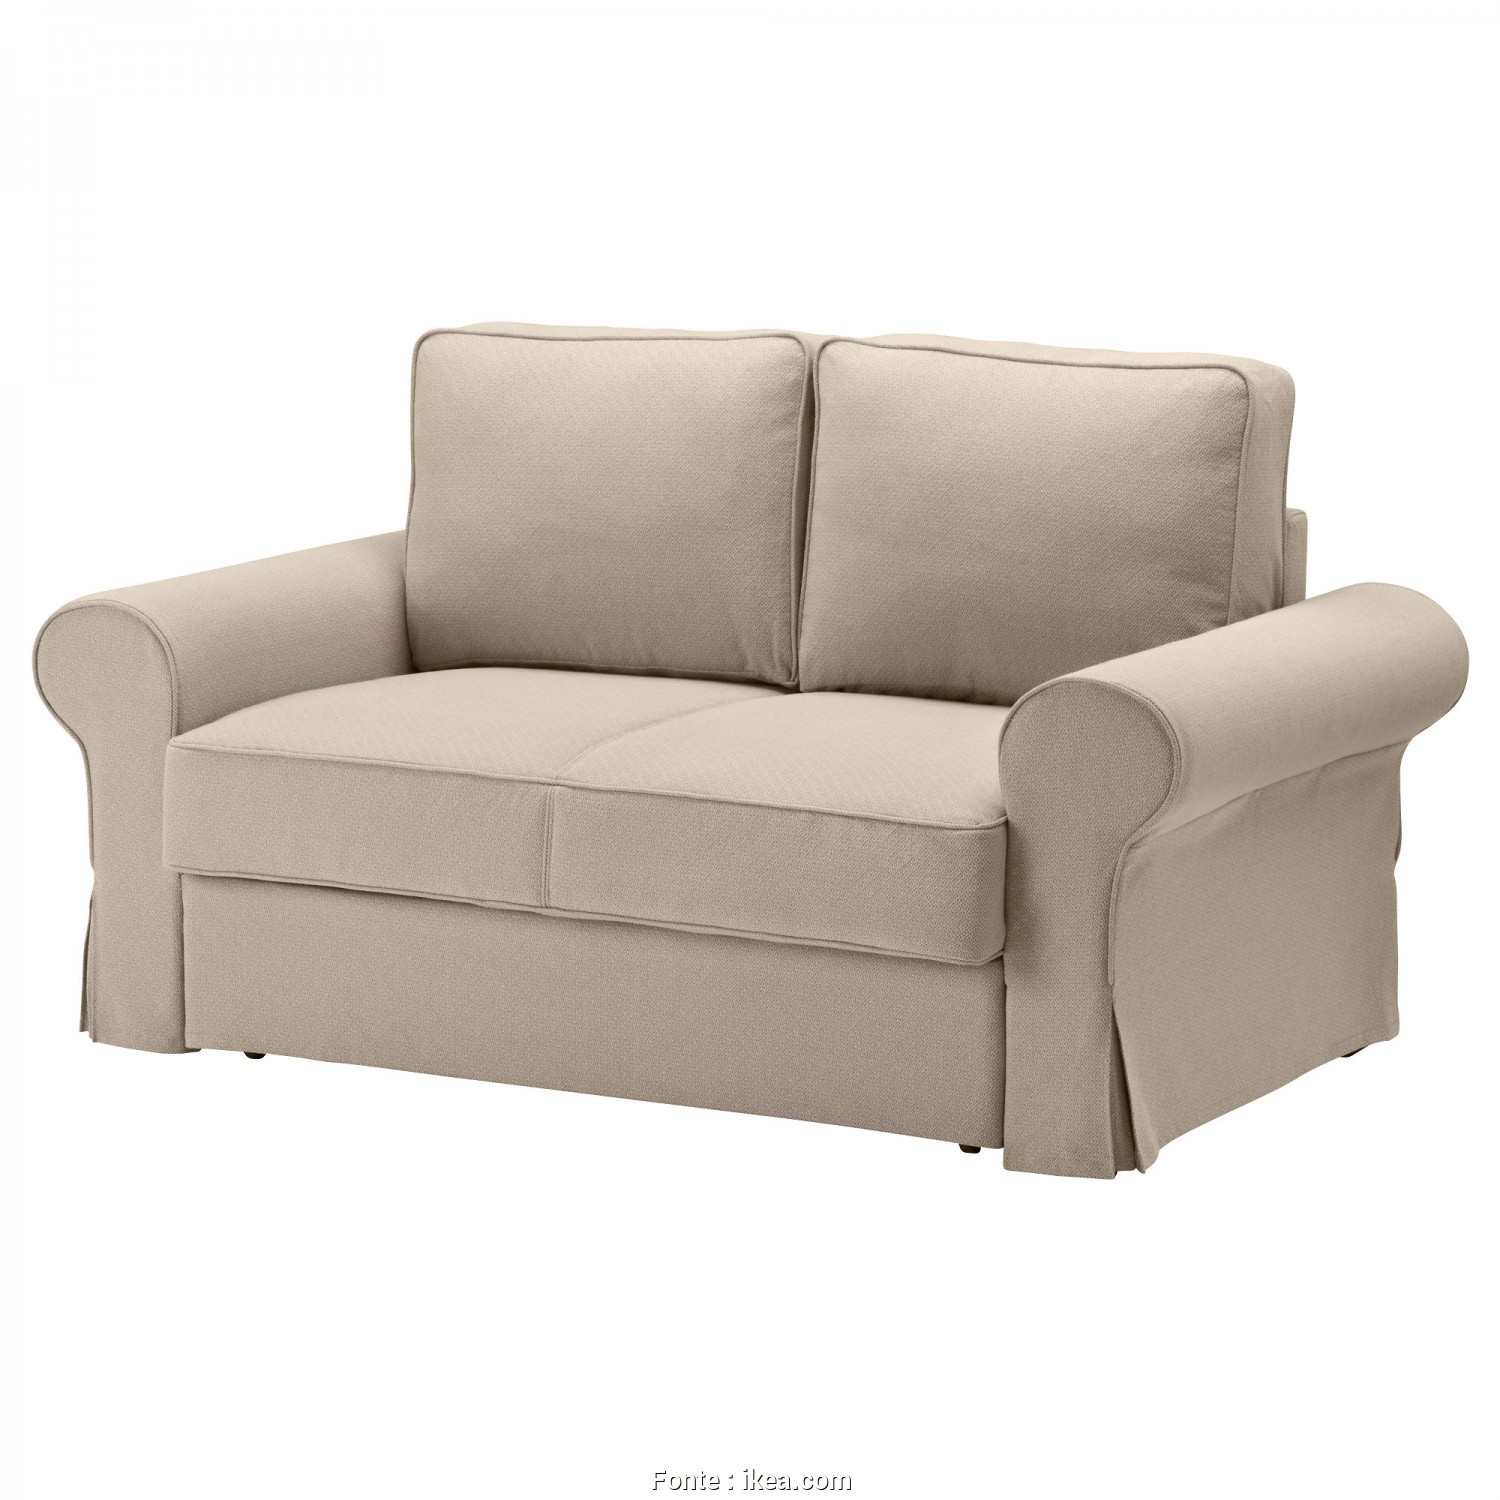 Ikea Backabro Kılıf, Bello BACKABRO Two-Seat Sofa-Bed Hylte Beige